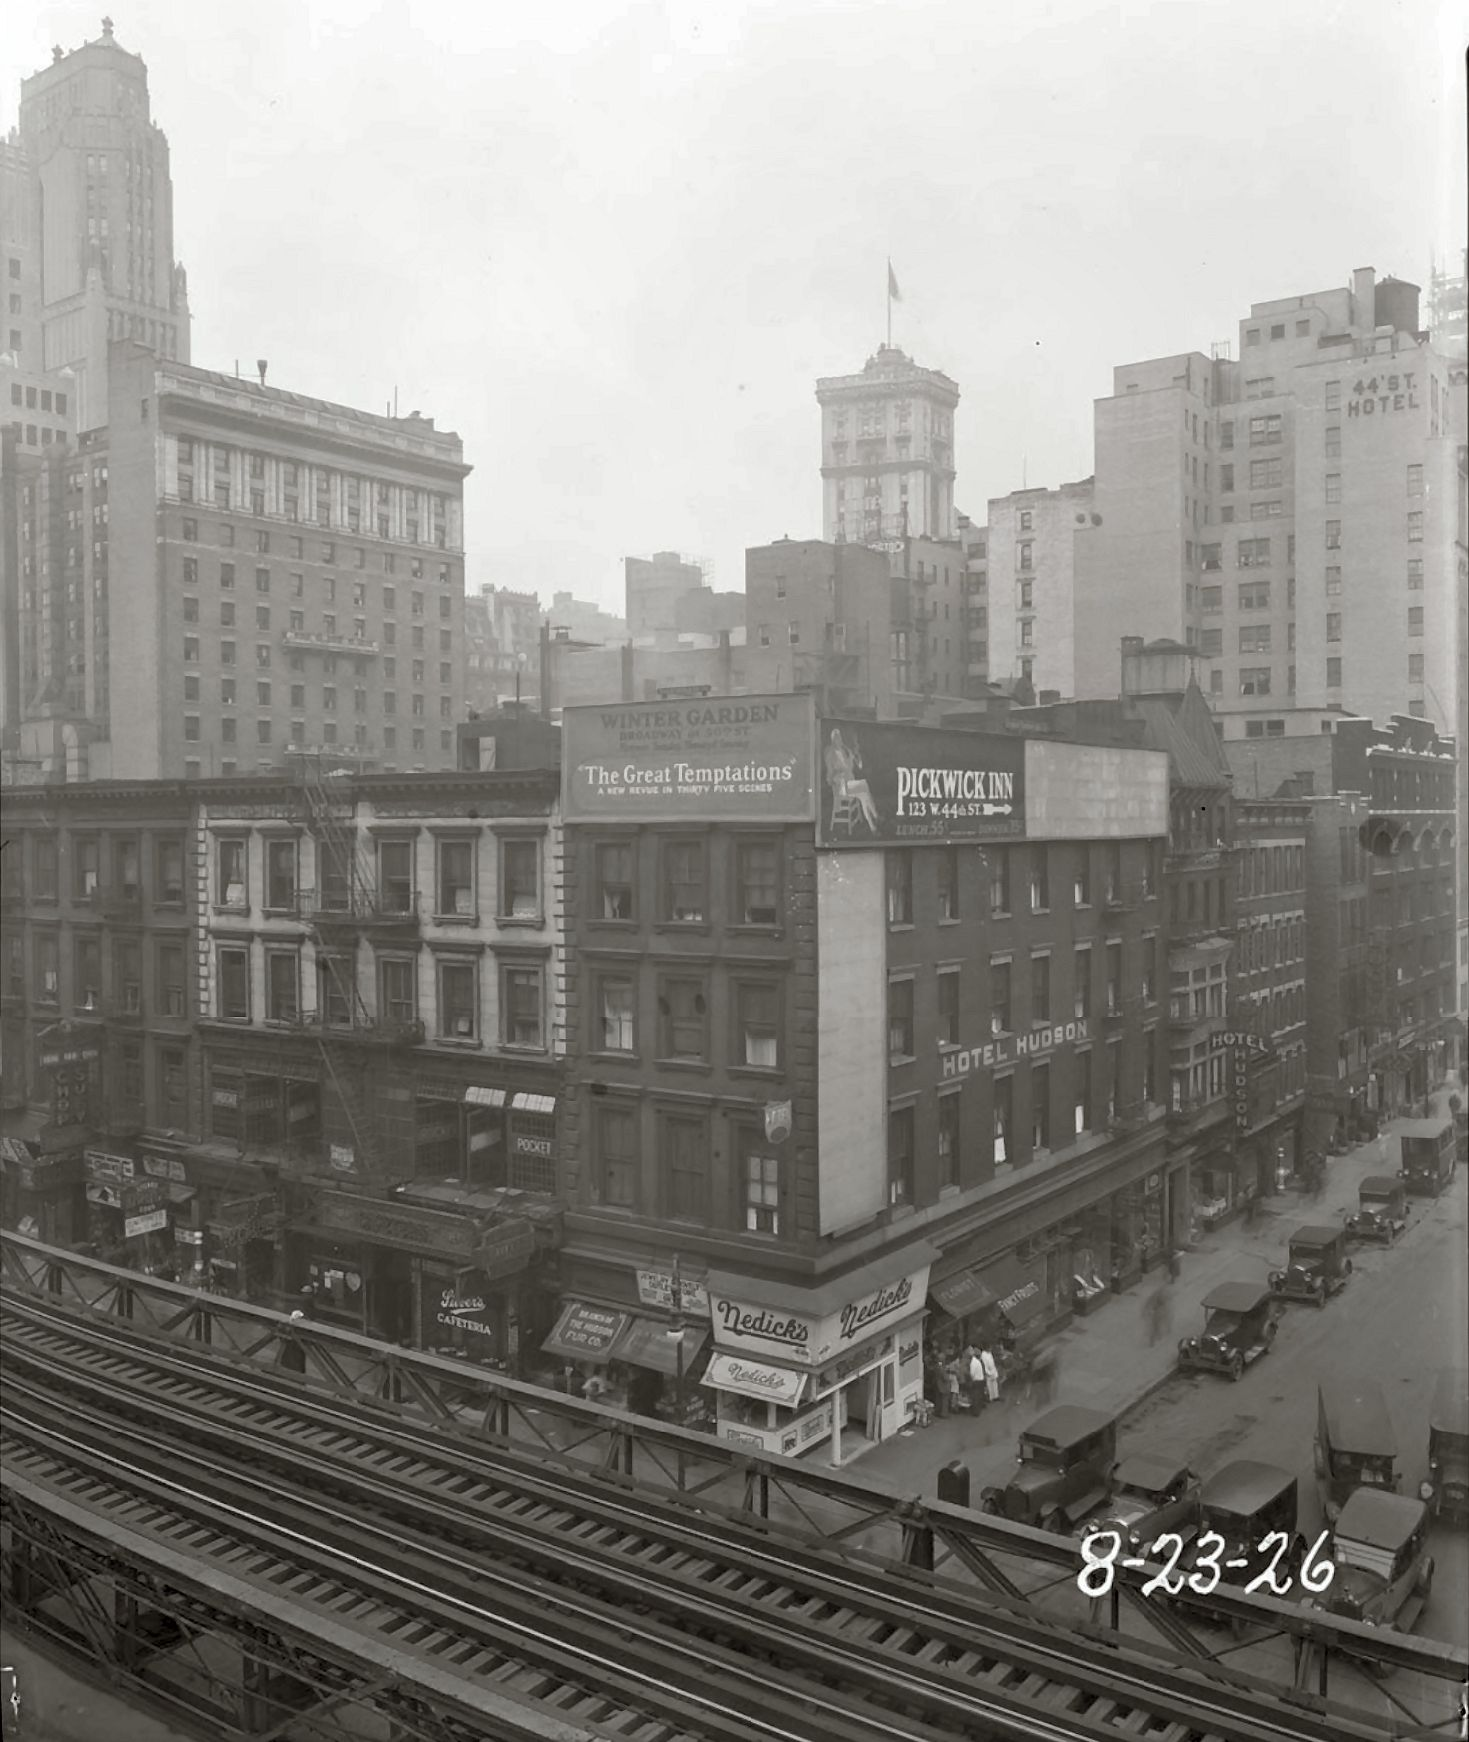 sixth avenue and west 44th street new york city august 23 1926